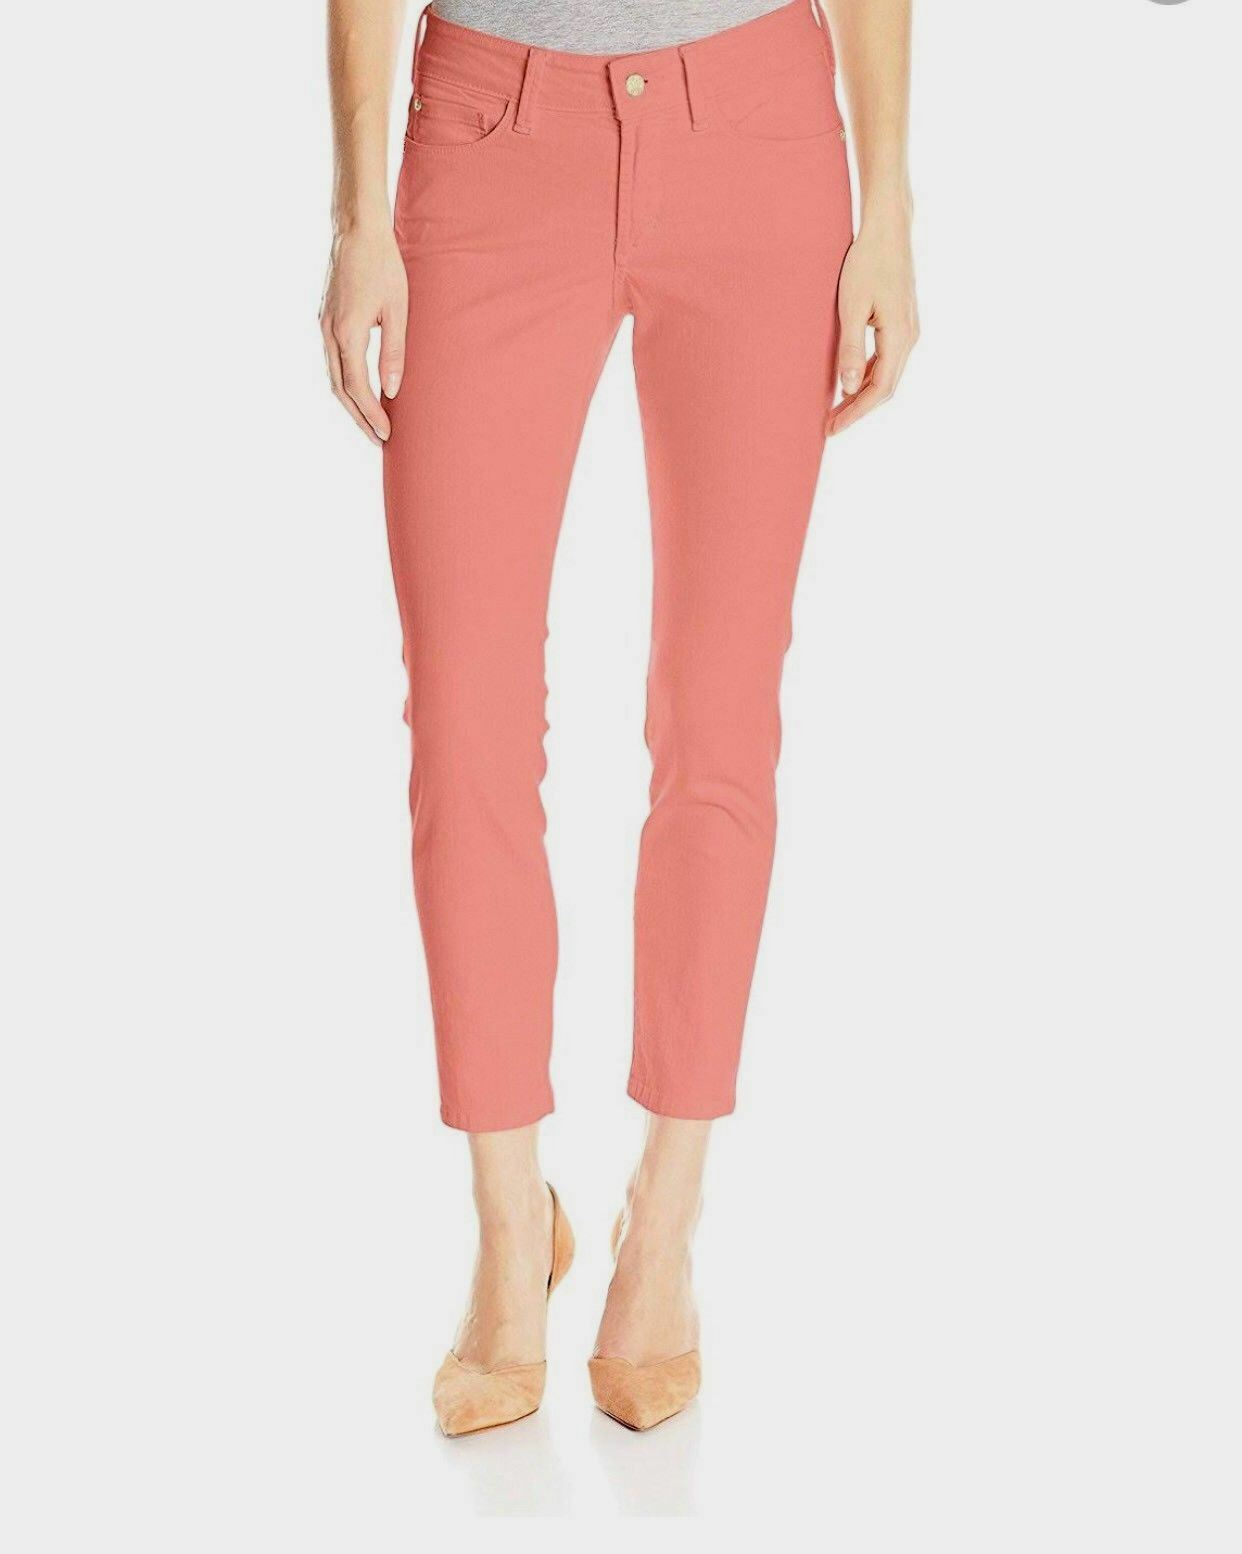 NYDJ Alina Congreenible Ankle Jeans M77Z1864 Coral Size 10